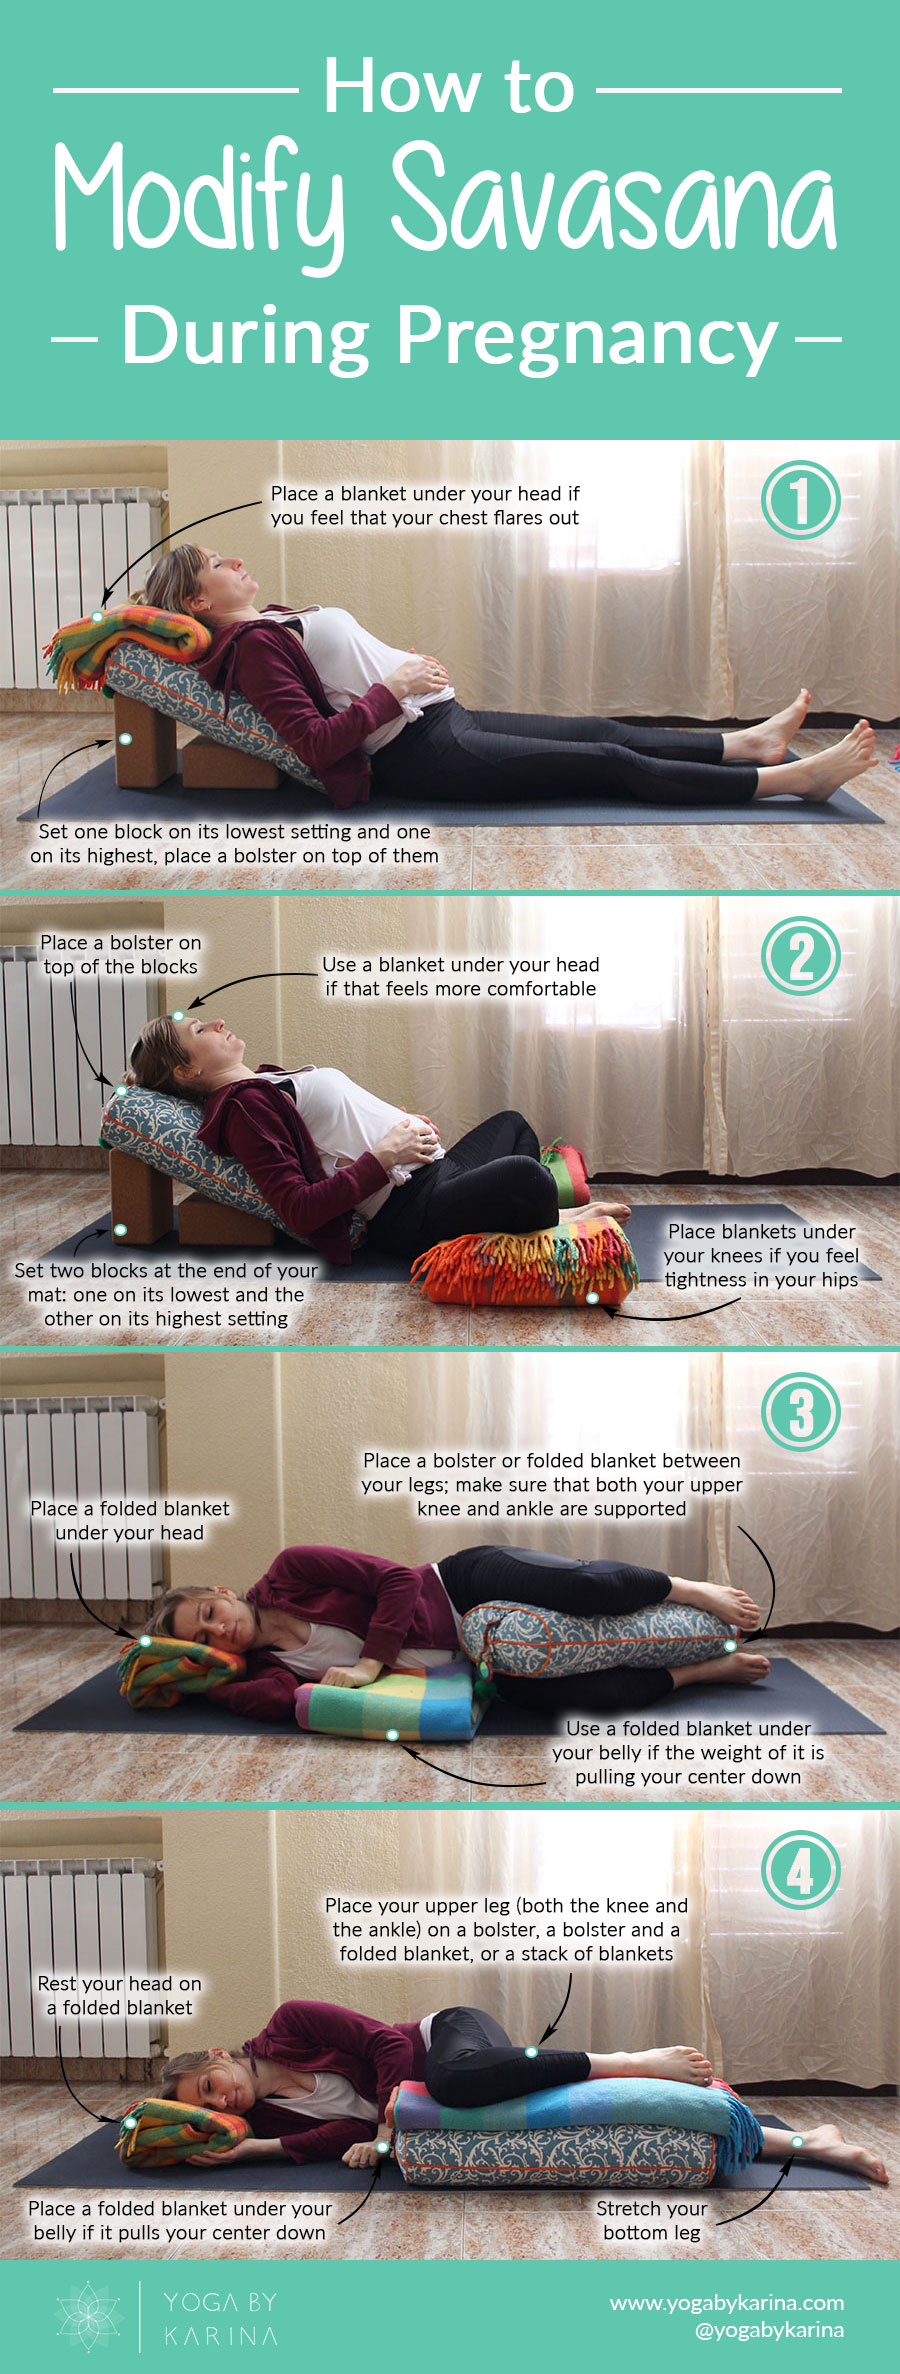 Savasana For Pregnancy